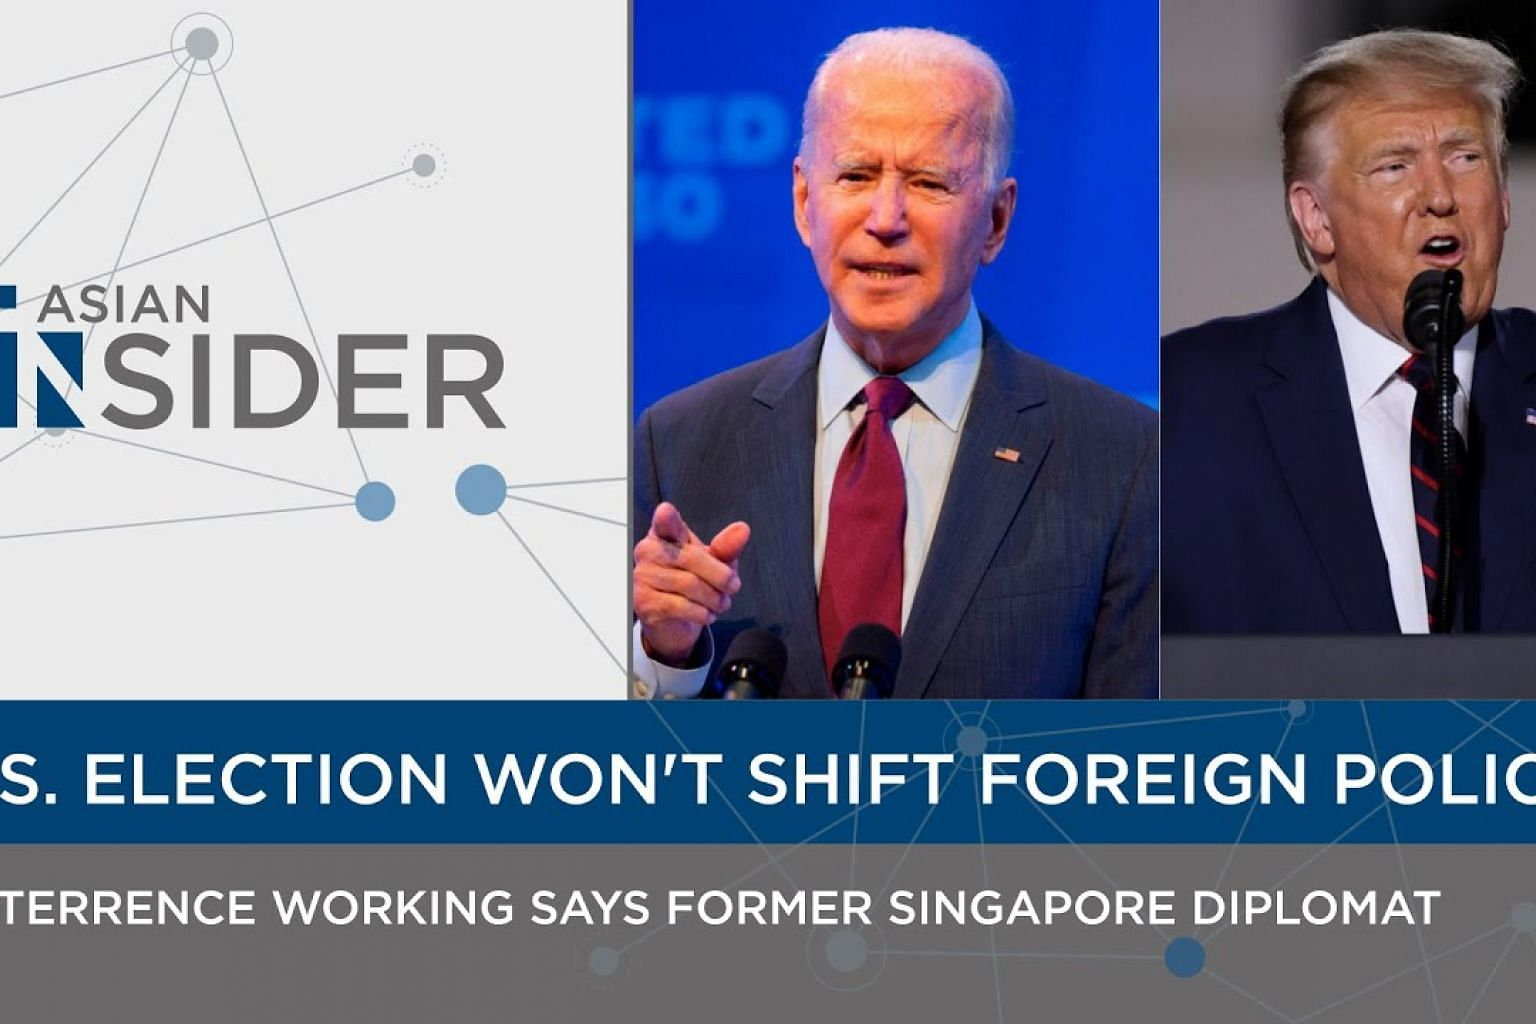 US Election won't shift its foreign policy says former Singapore diplomat | Asian Insider EP 43